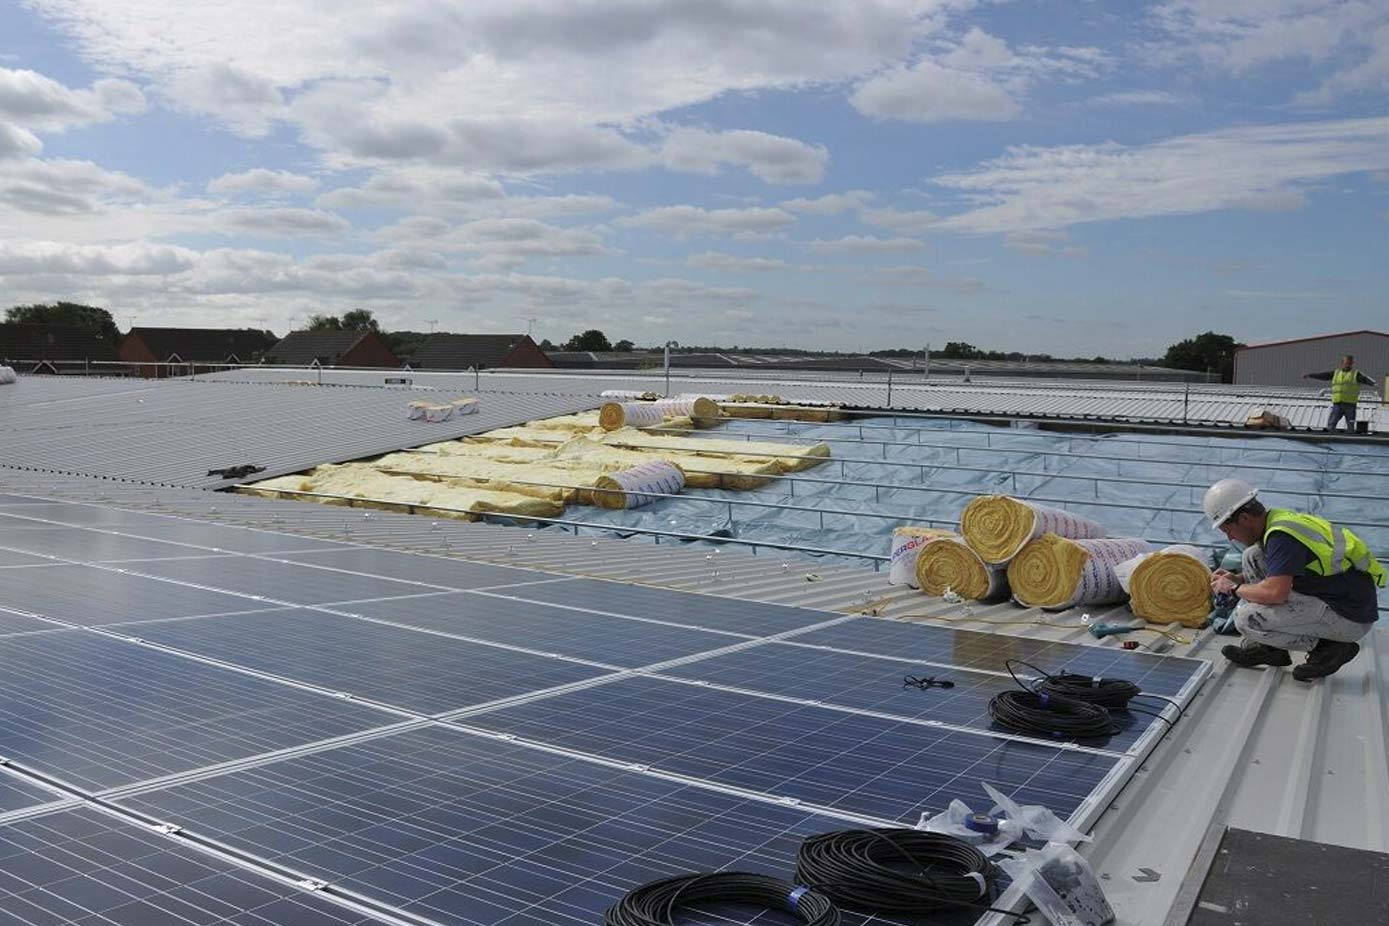 Photovoltaic panels are being installed